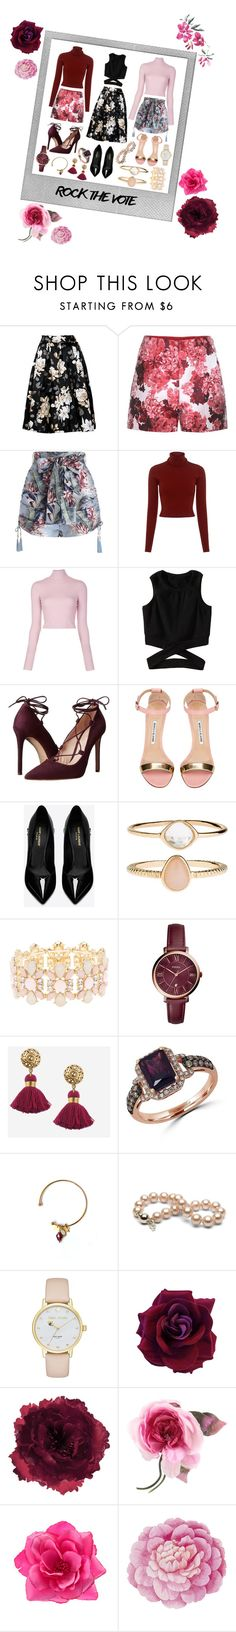 """3 outfits 👚👗👘"" by charlottedevuyssere ❤ liked on Polyvore featuring Polaroid, Moncler Gamme Rouge, Zimmermann, A.L.C., Massimo Matteo, Manolo Blahnik, Yves Saint Laurent, Accessorize, Charlotte Russe and FOSSIL"